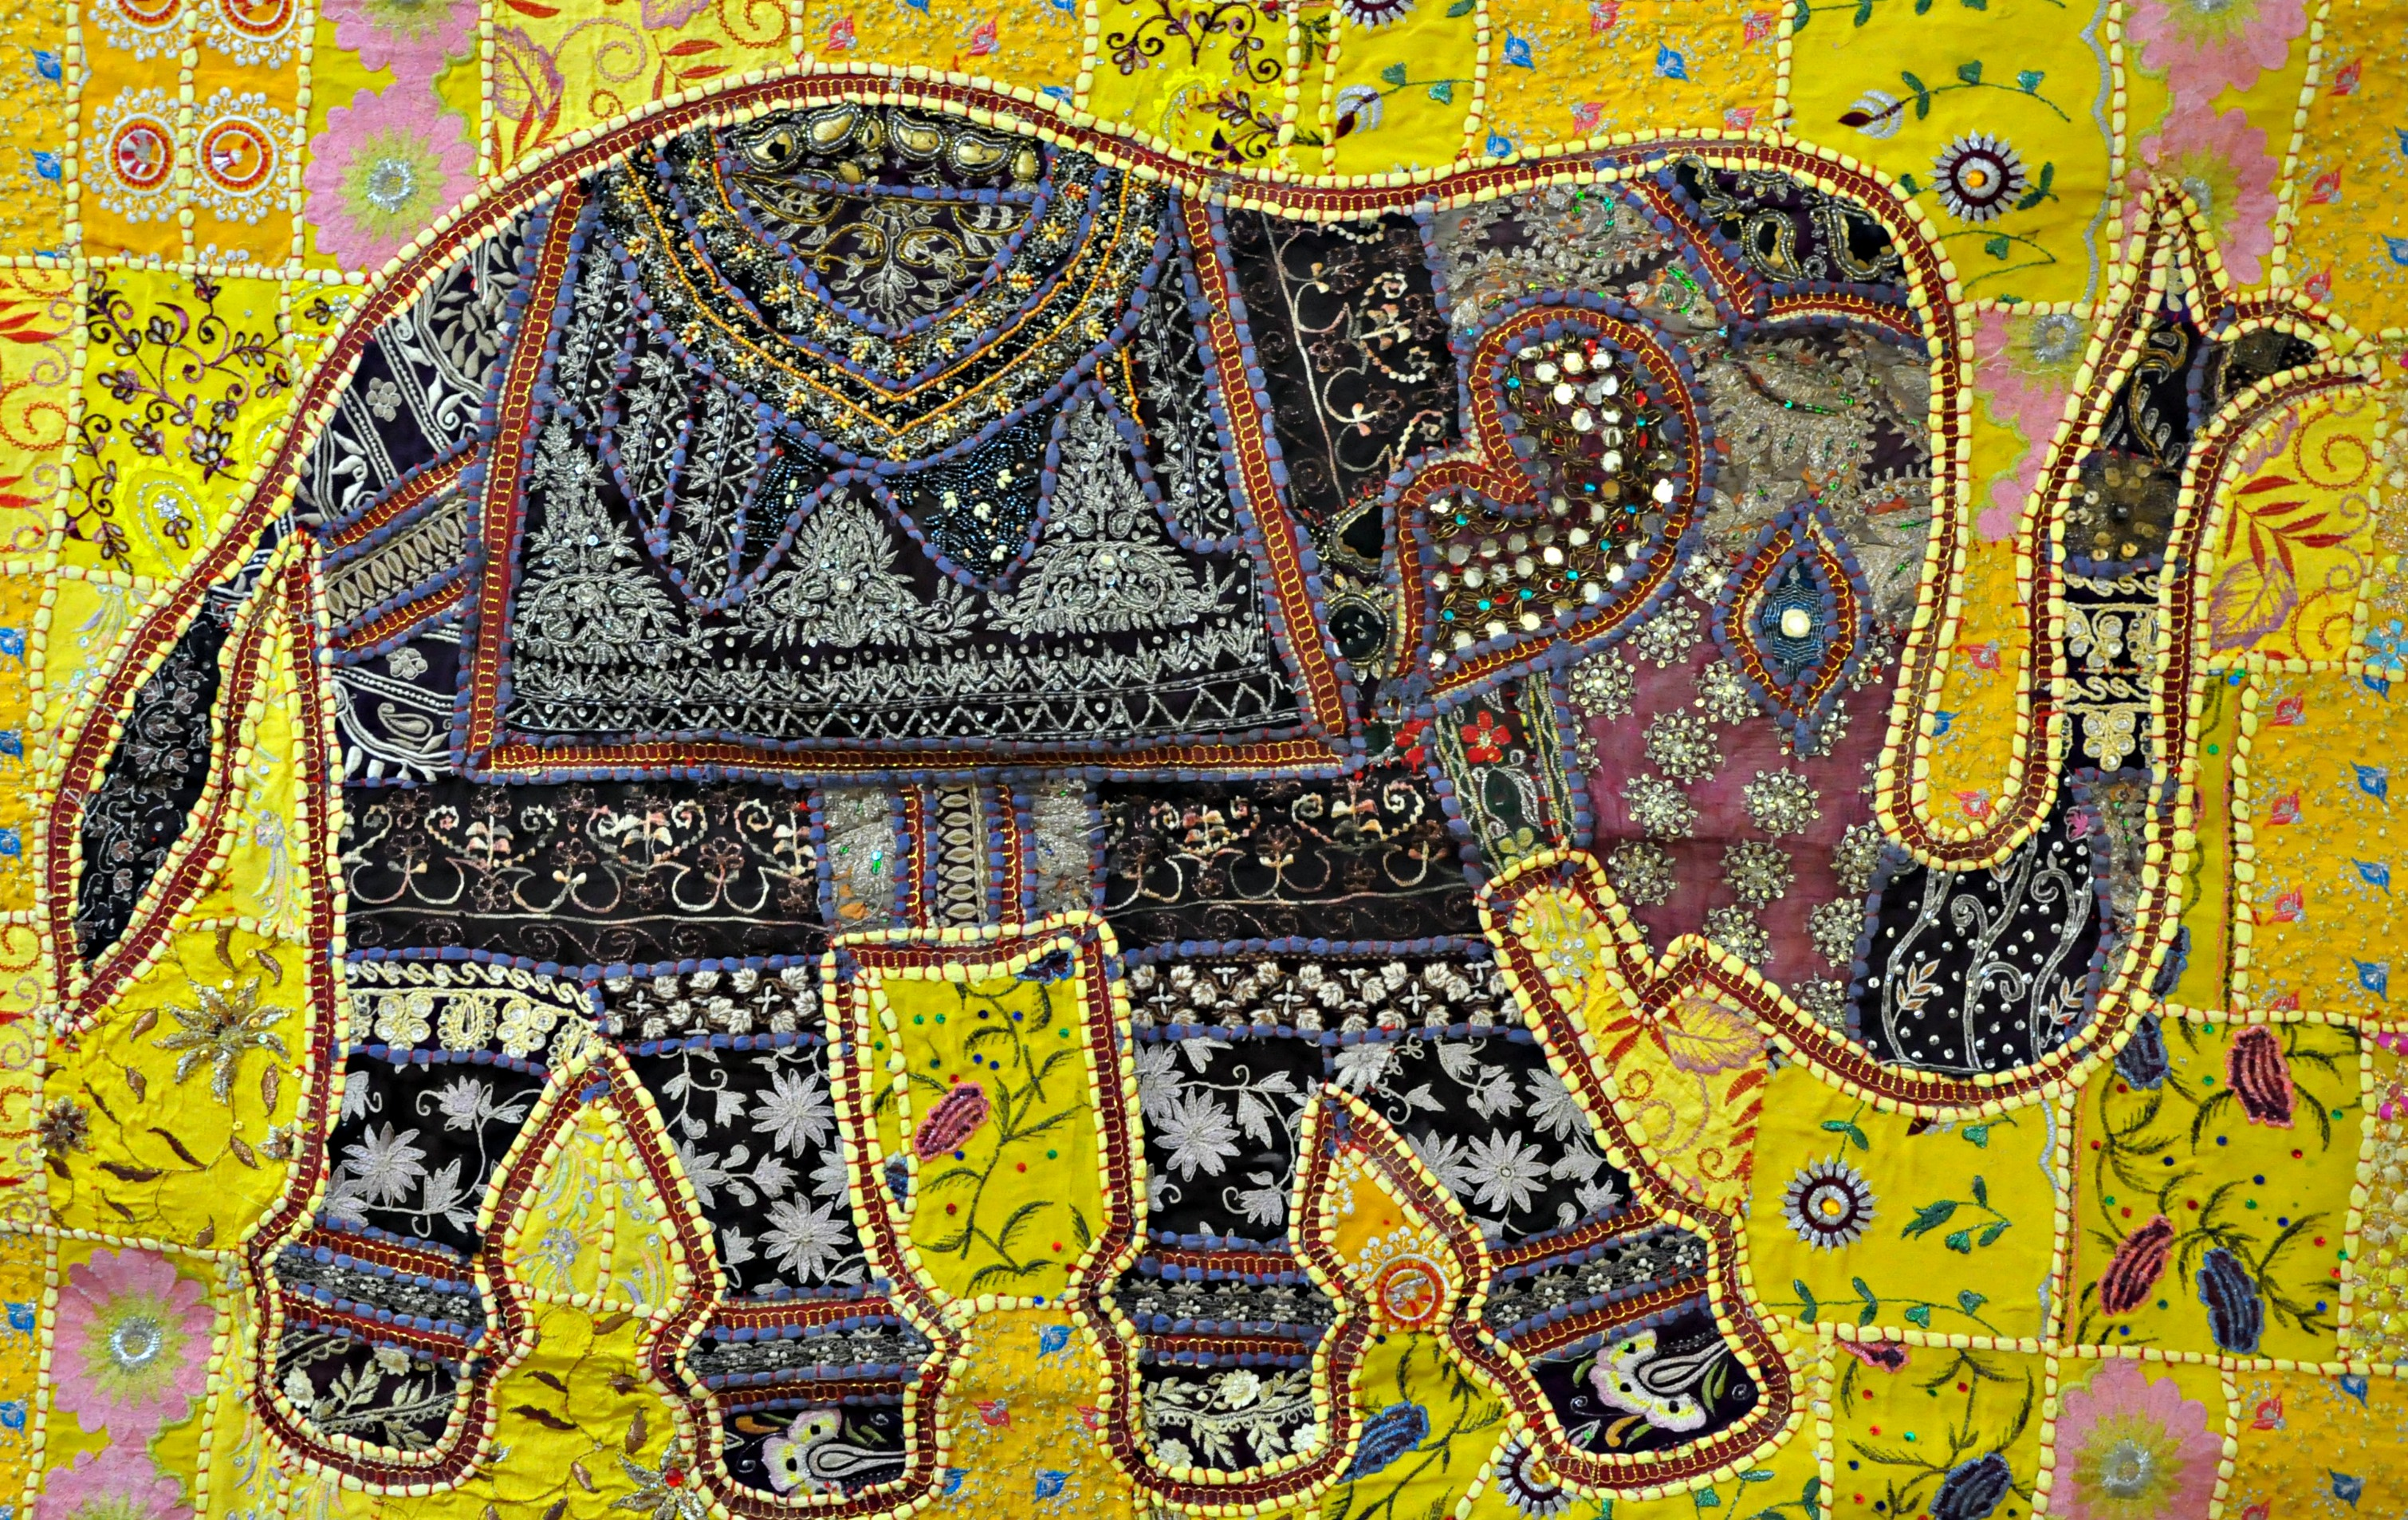 Indian Vintage Handmade Patchwork Tapestry Wall Hanging